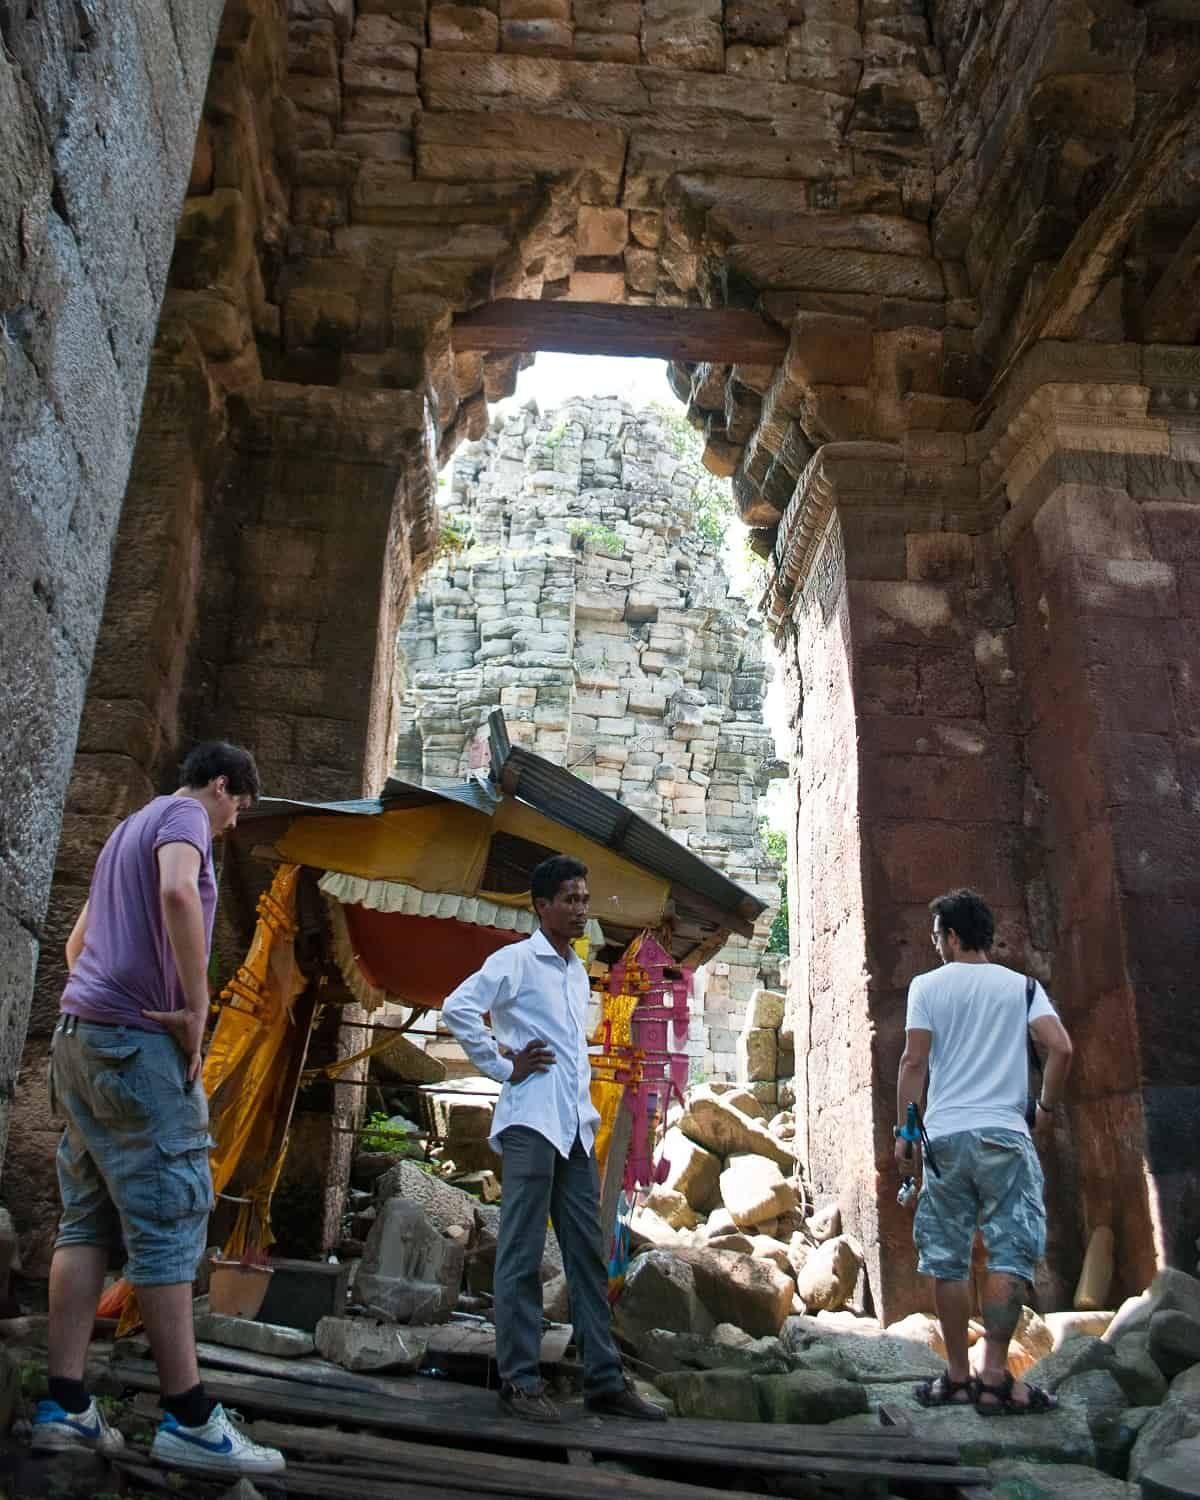 Remains of tower, Banteay Chhmar, Cambodia